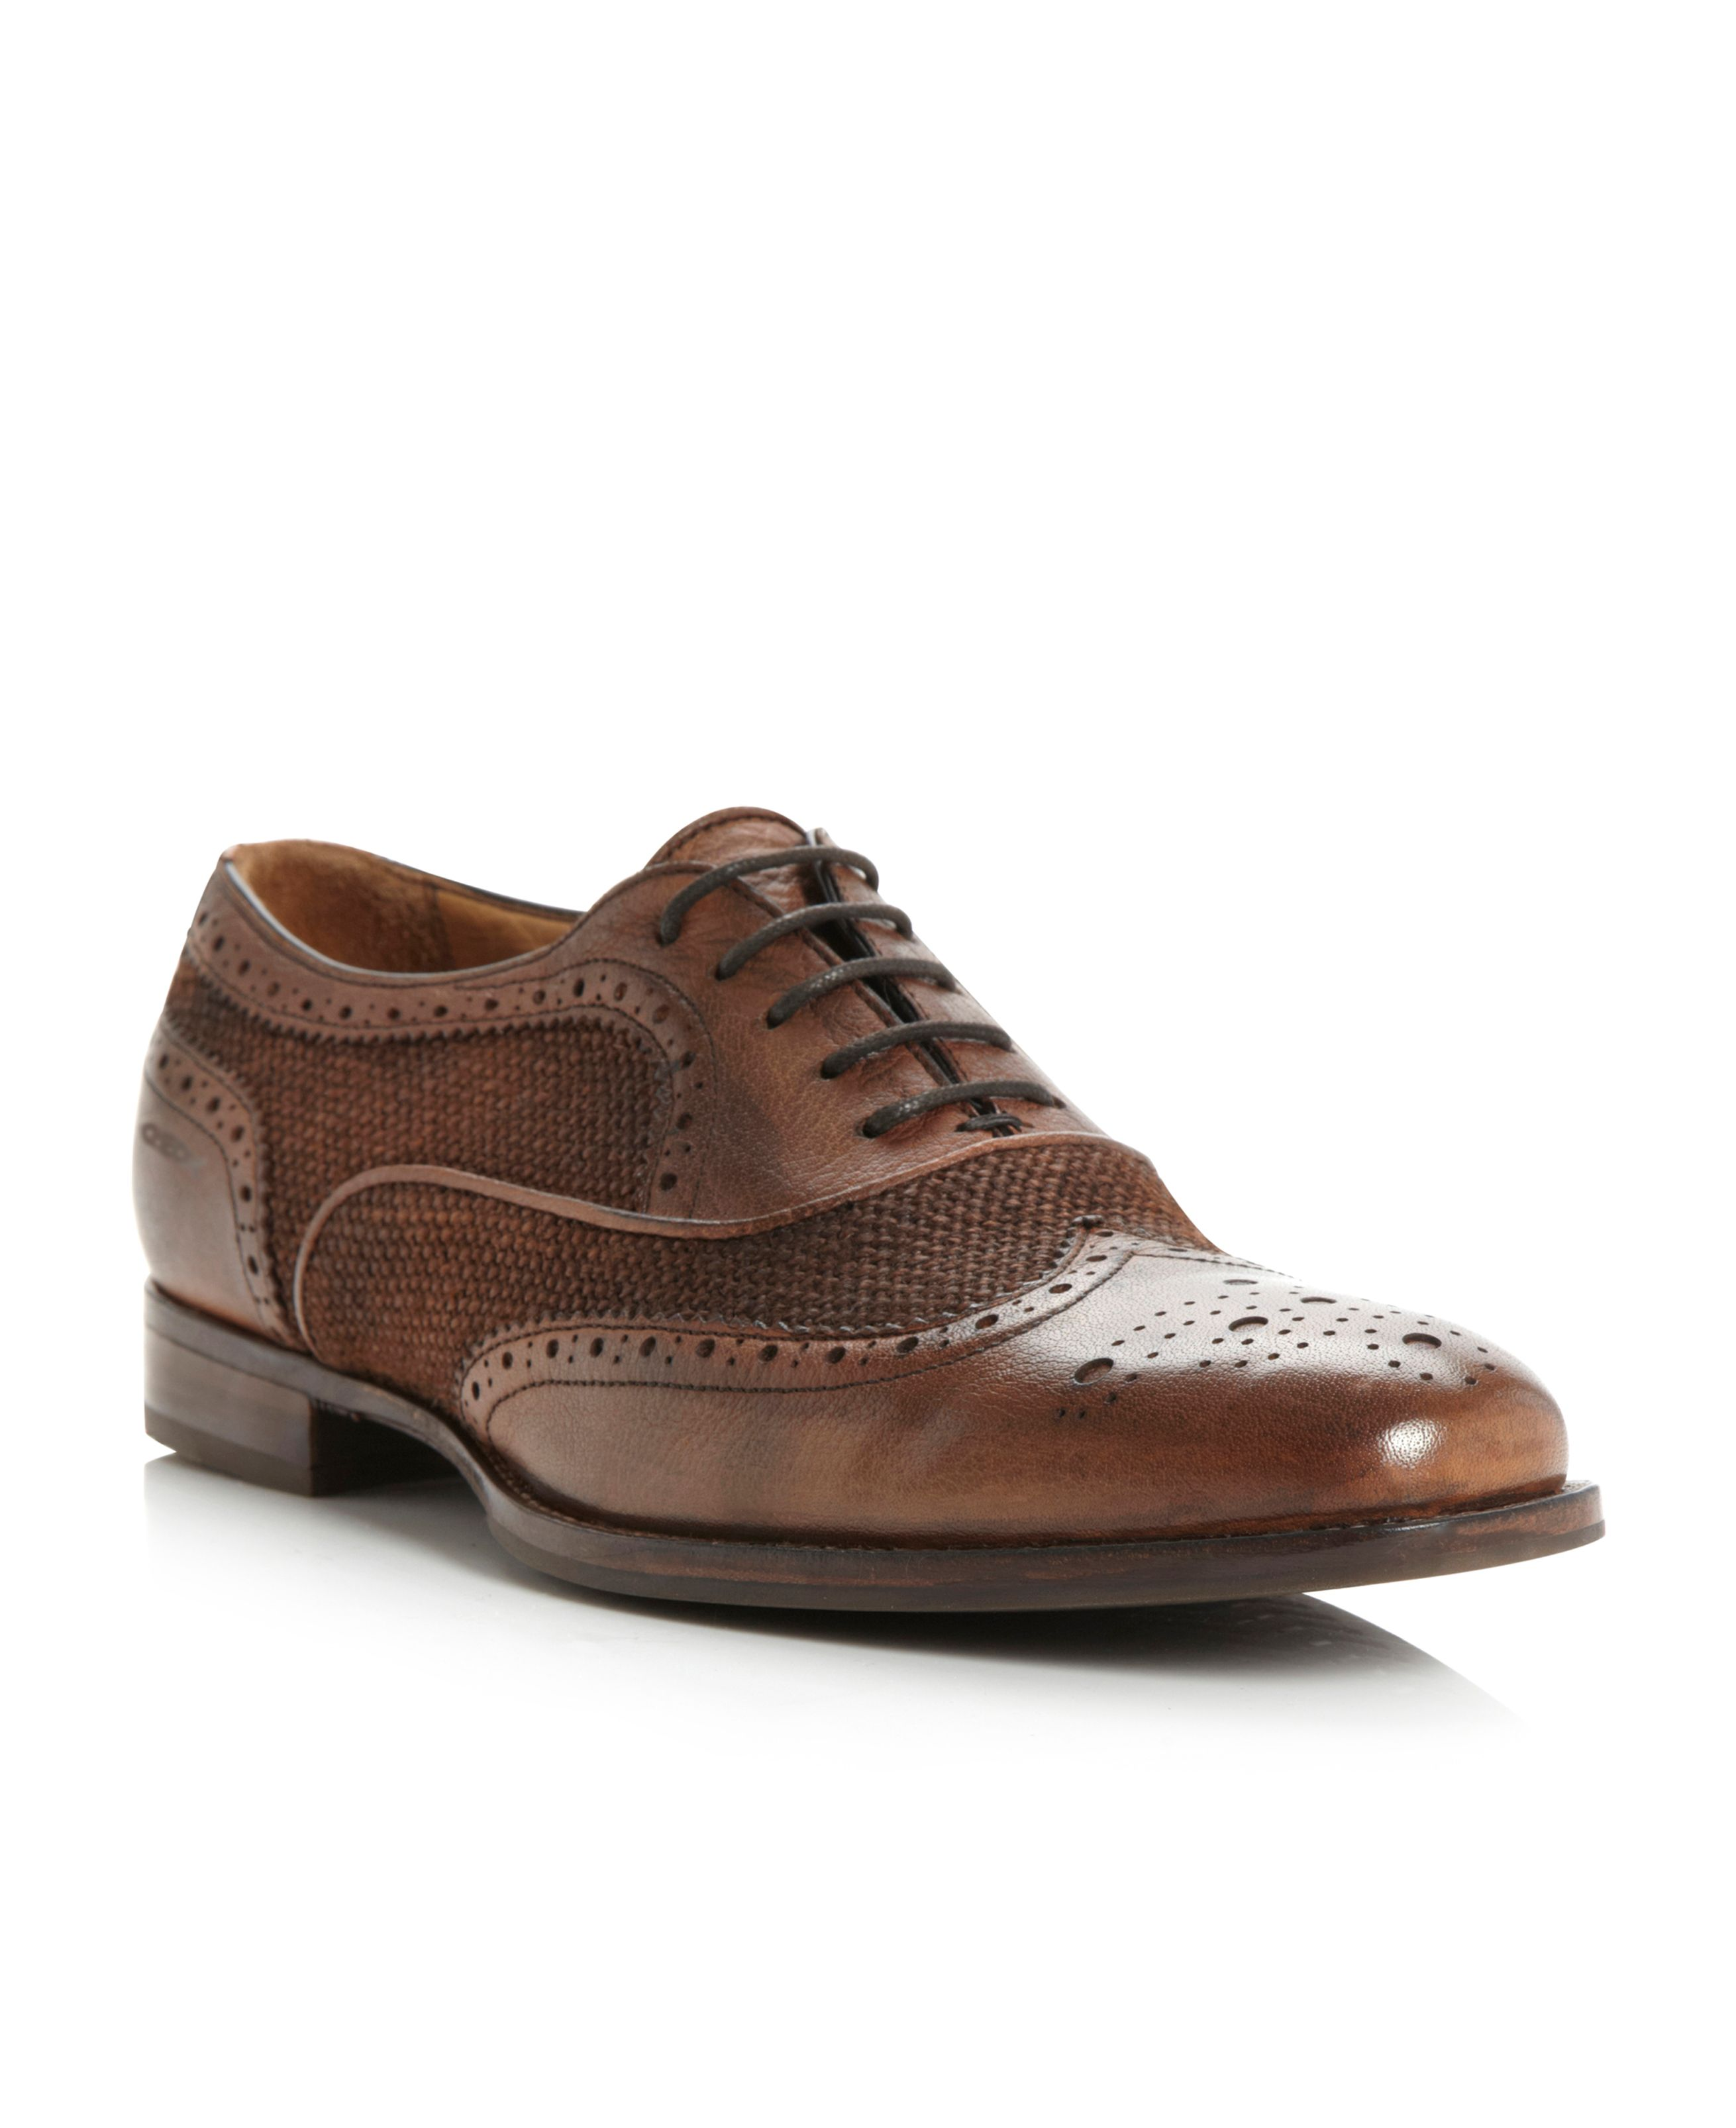 Connor U32P2C contrast wingtip brogue